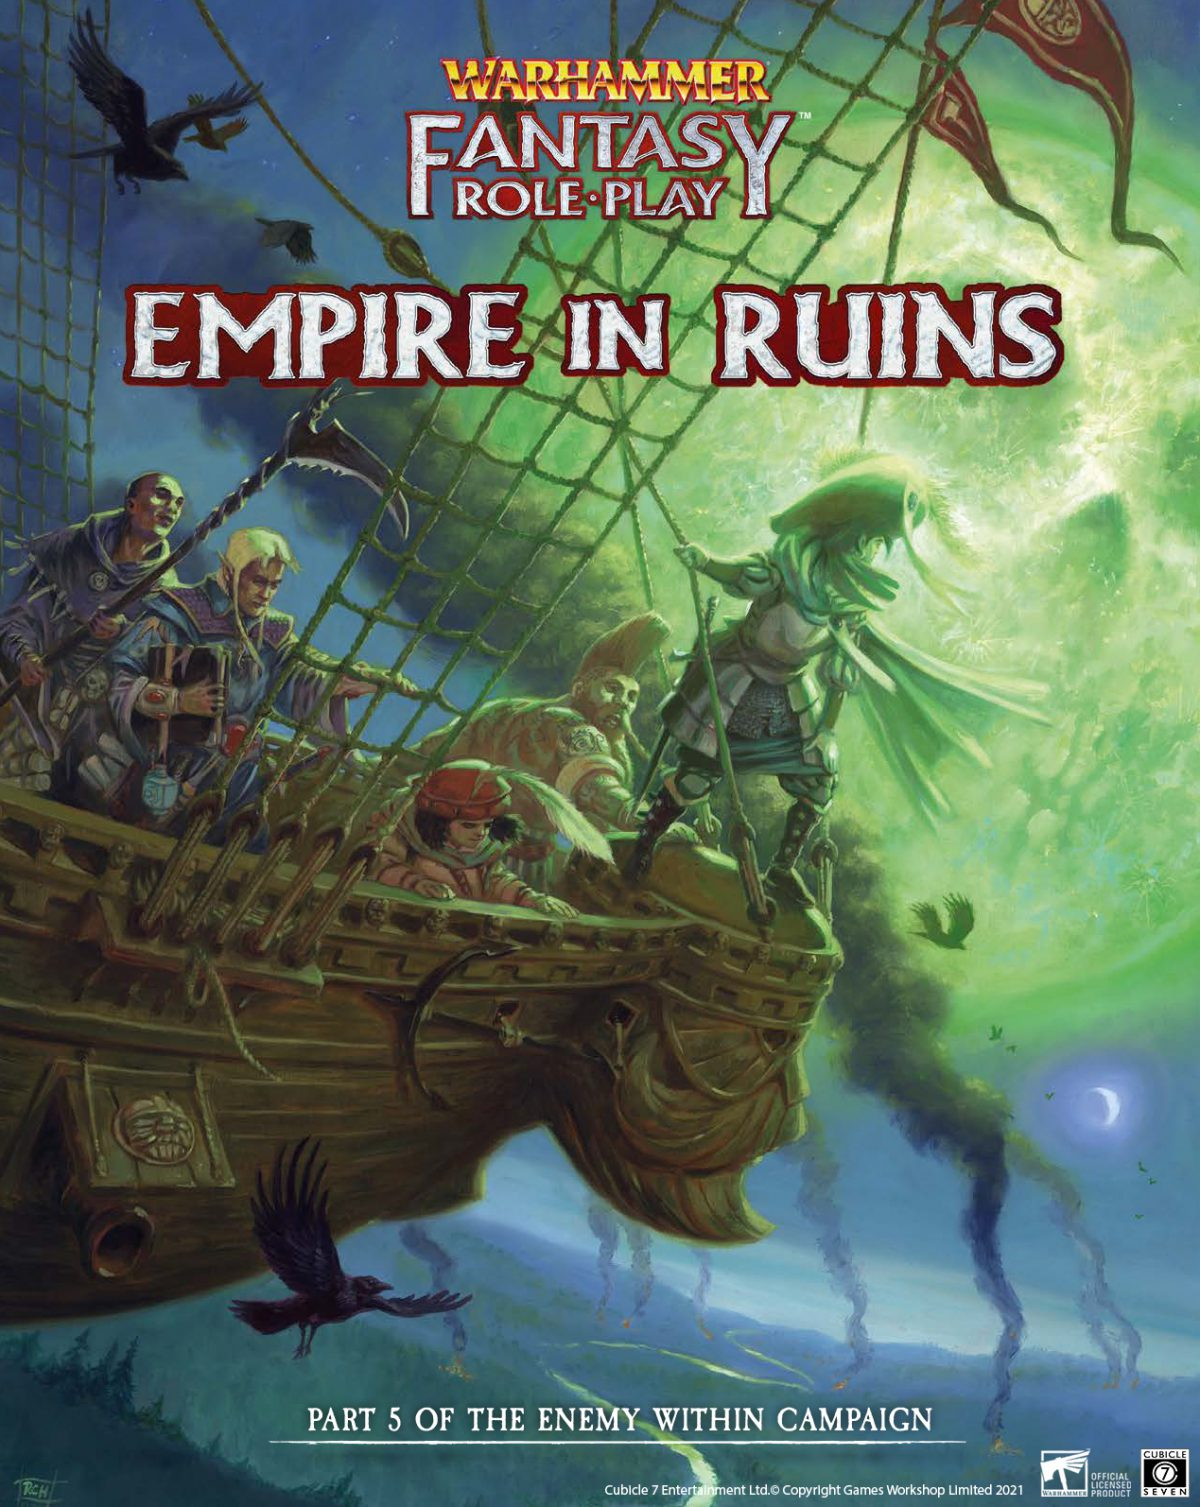 New Releases this week for WFRP & Soulbound!